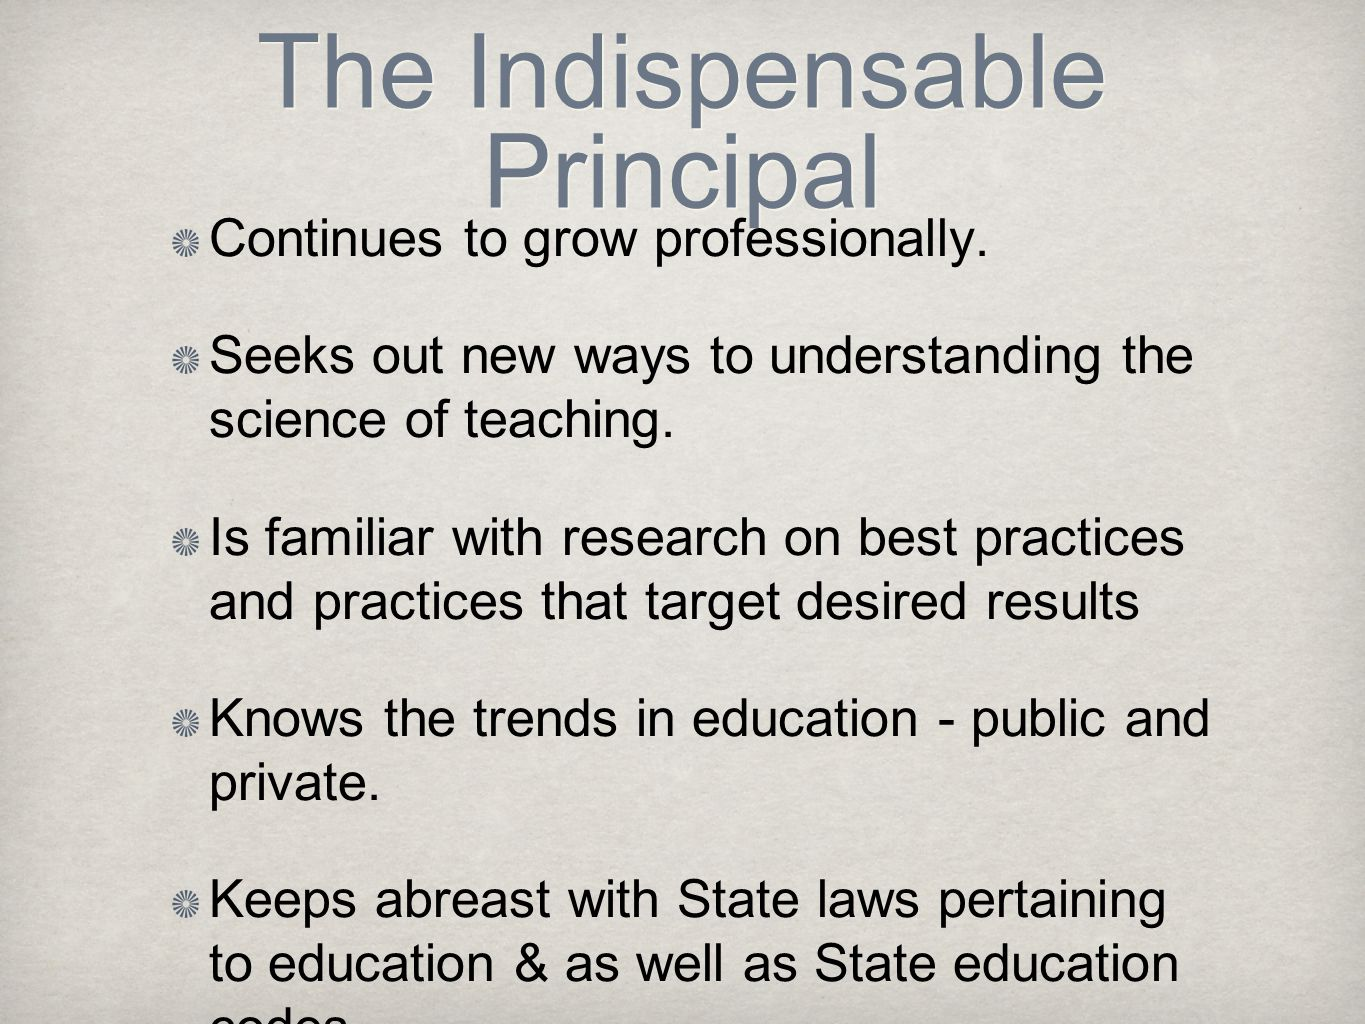 The Indispensable Principal